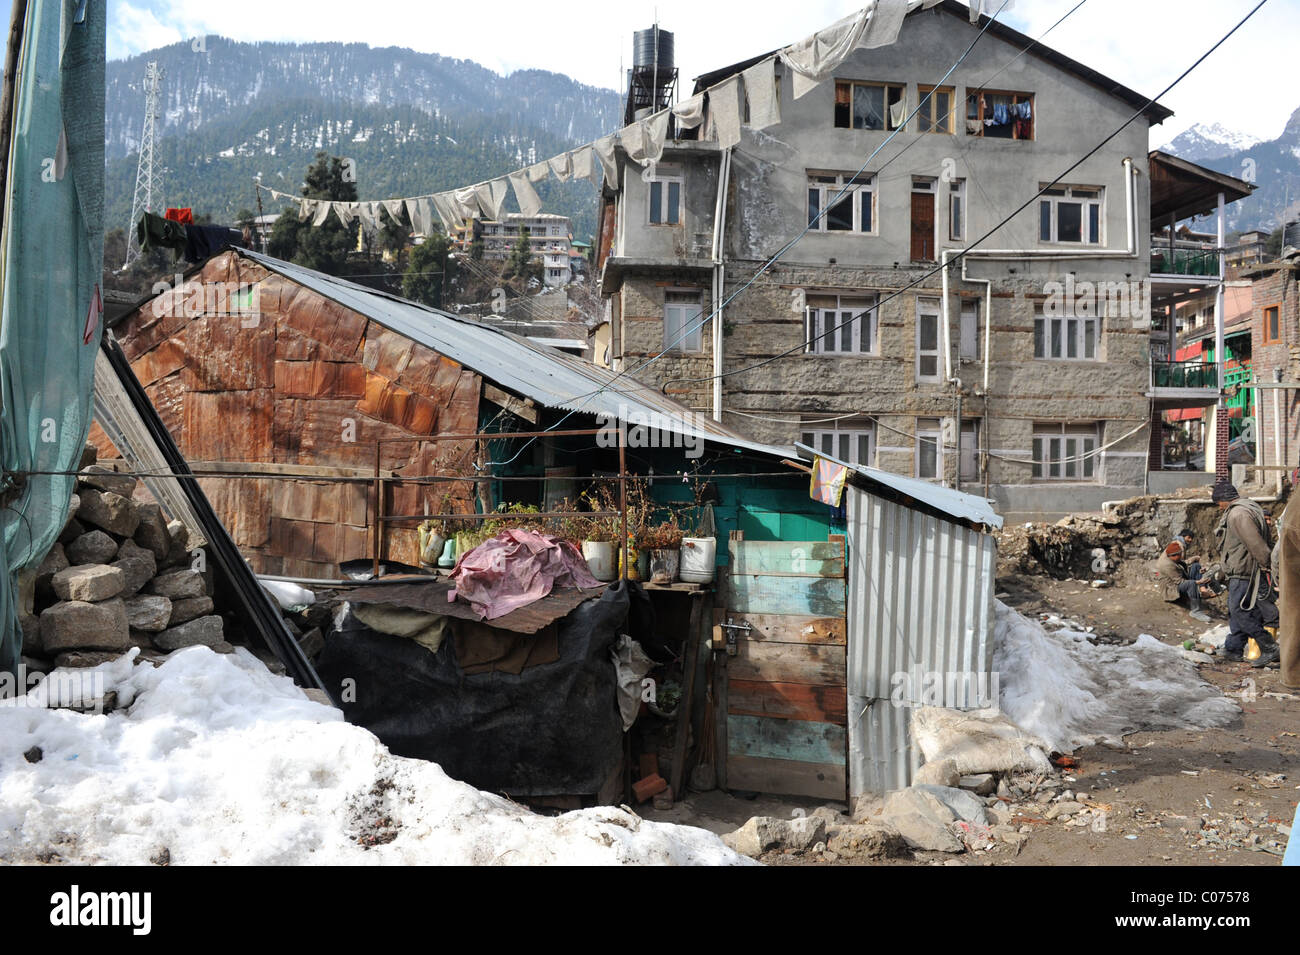 Town of Manali, India - Stock Image